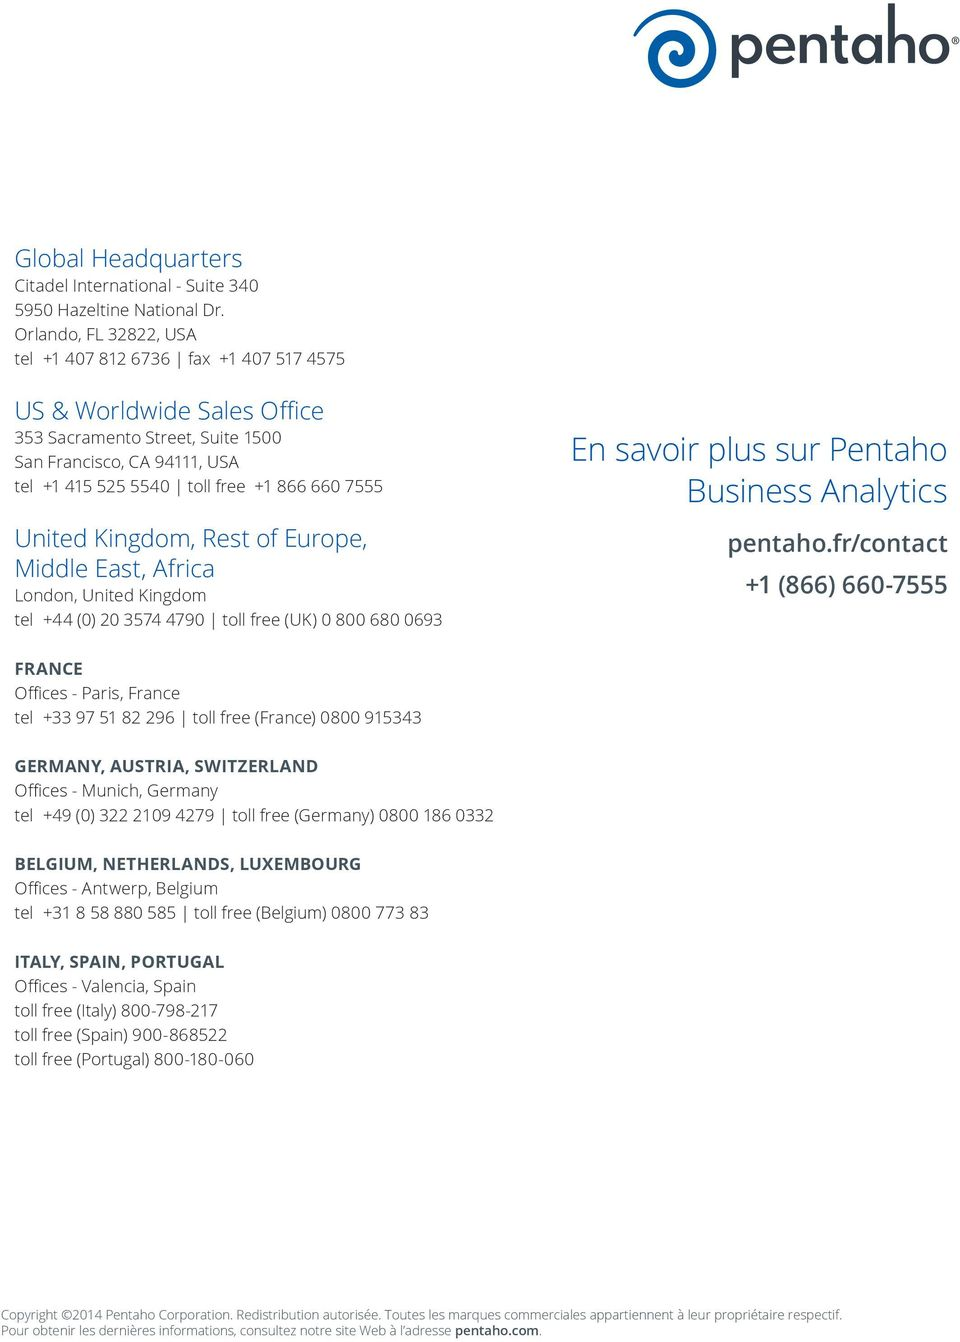 United Kingdom, Rest of Europe, Middle East, Africa London, United Kingdom tel +44 (0) 20 3574 4790 toll free (UK) 0 800 680 0693 En savoir plus sur Pentaho Business Analytics pentaho.